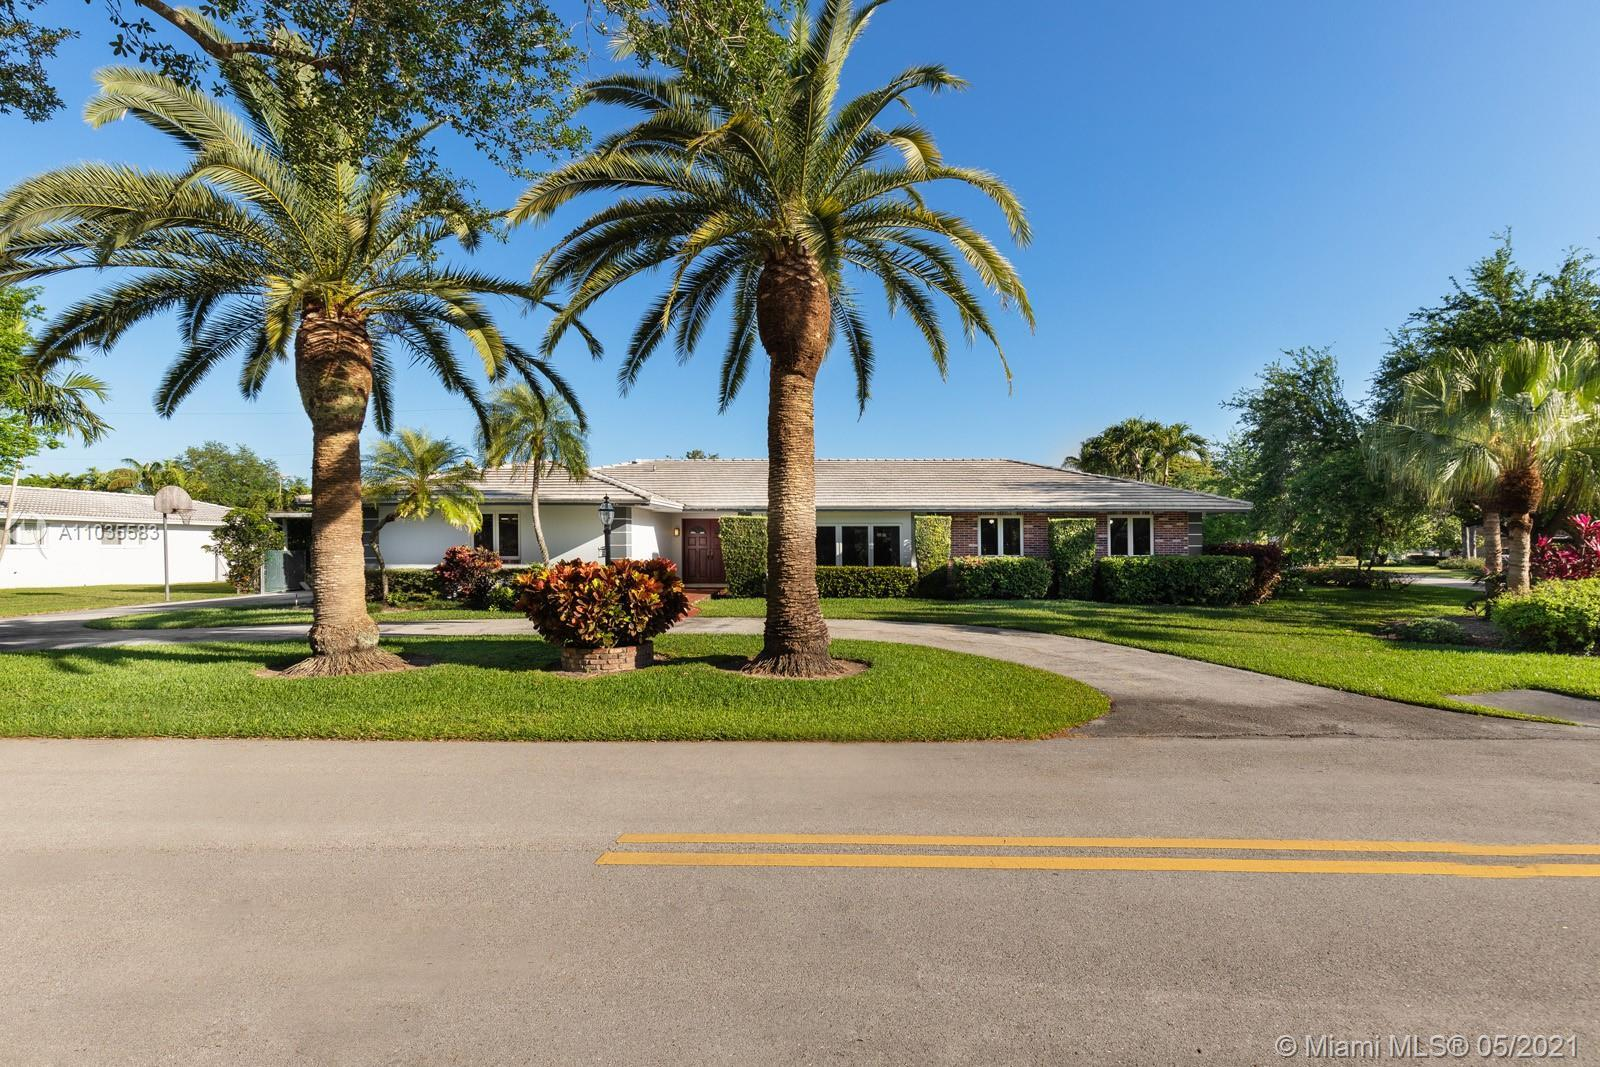 This beautiful 4bed + 3bath + maids/office space, loving home is in a corner lot, in one of the most